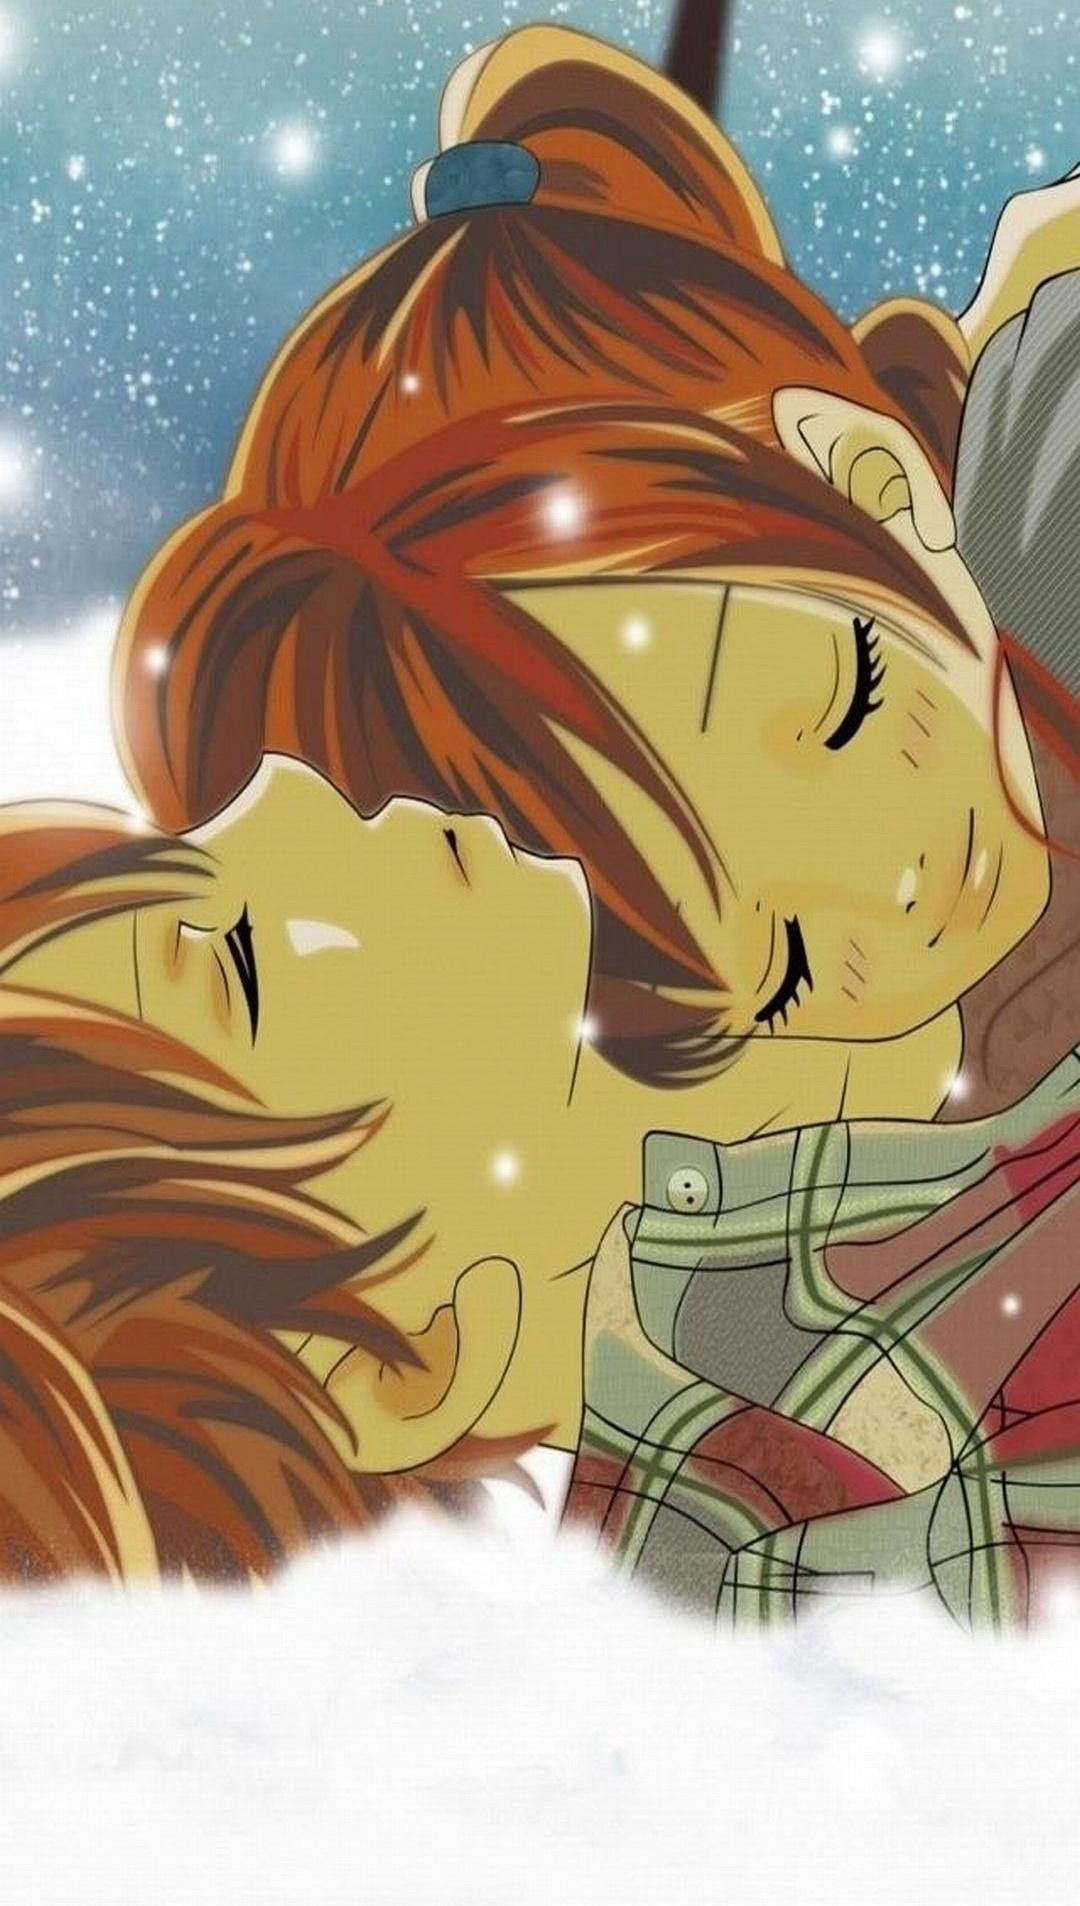 Pin by Mohmd zeyad on anime couple Anime wallpaper